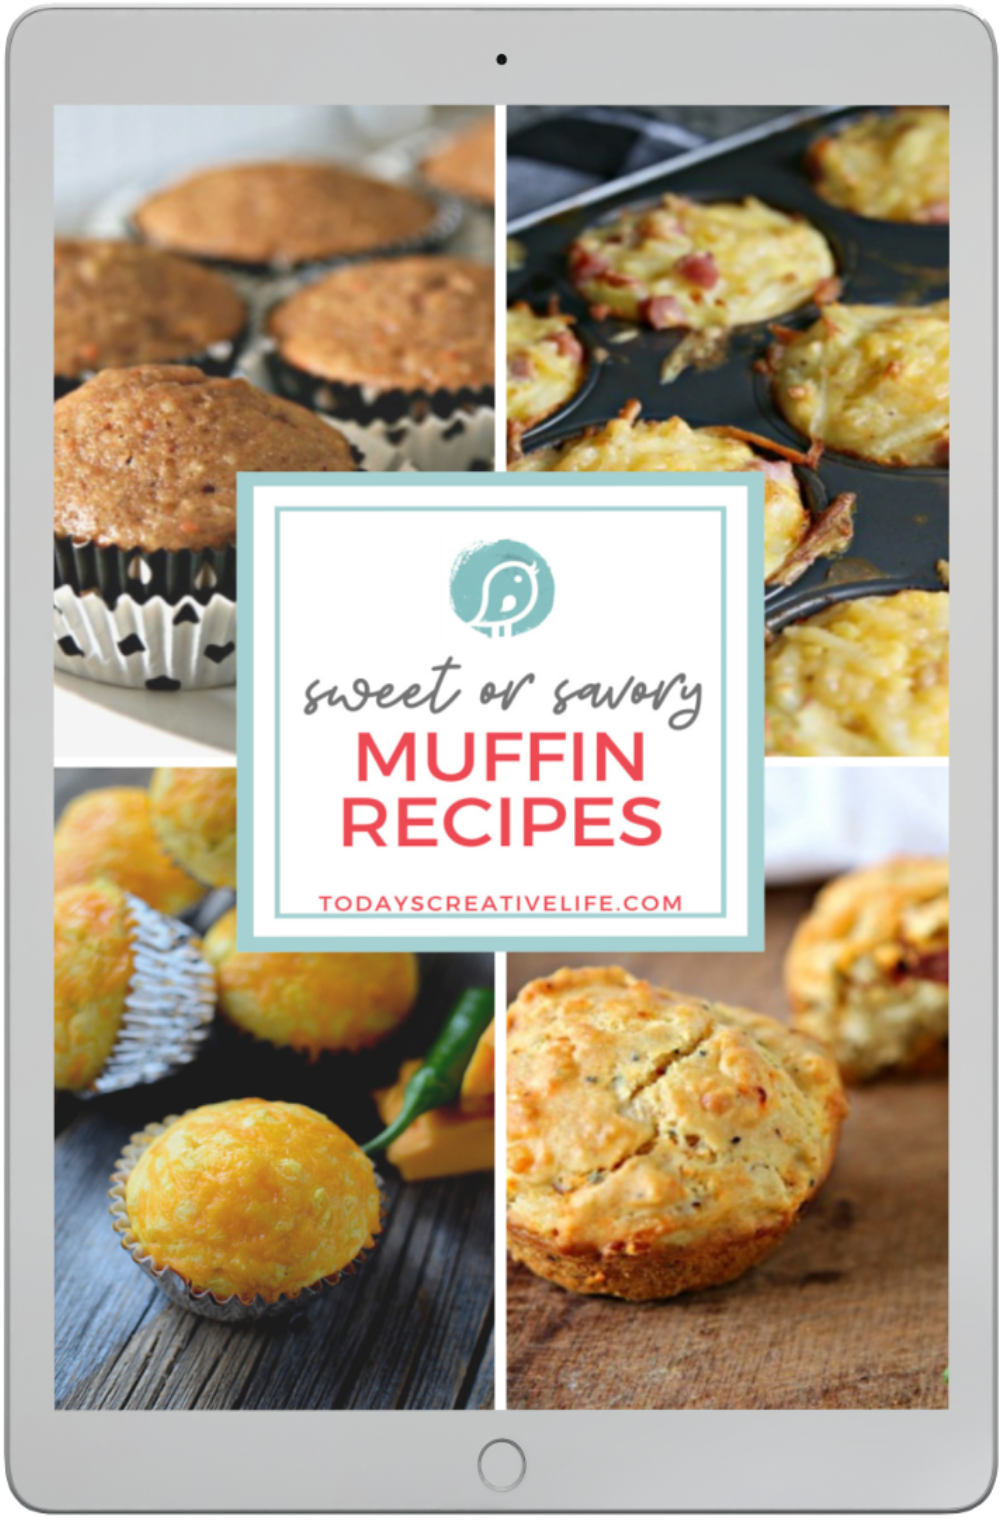 Sweet or Savory Muffins Recipes